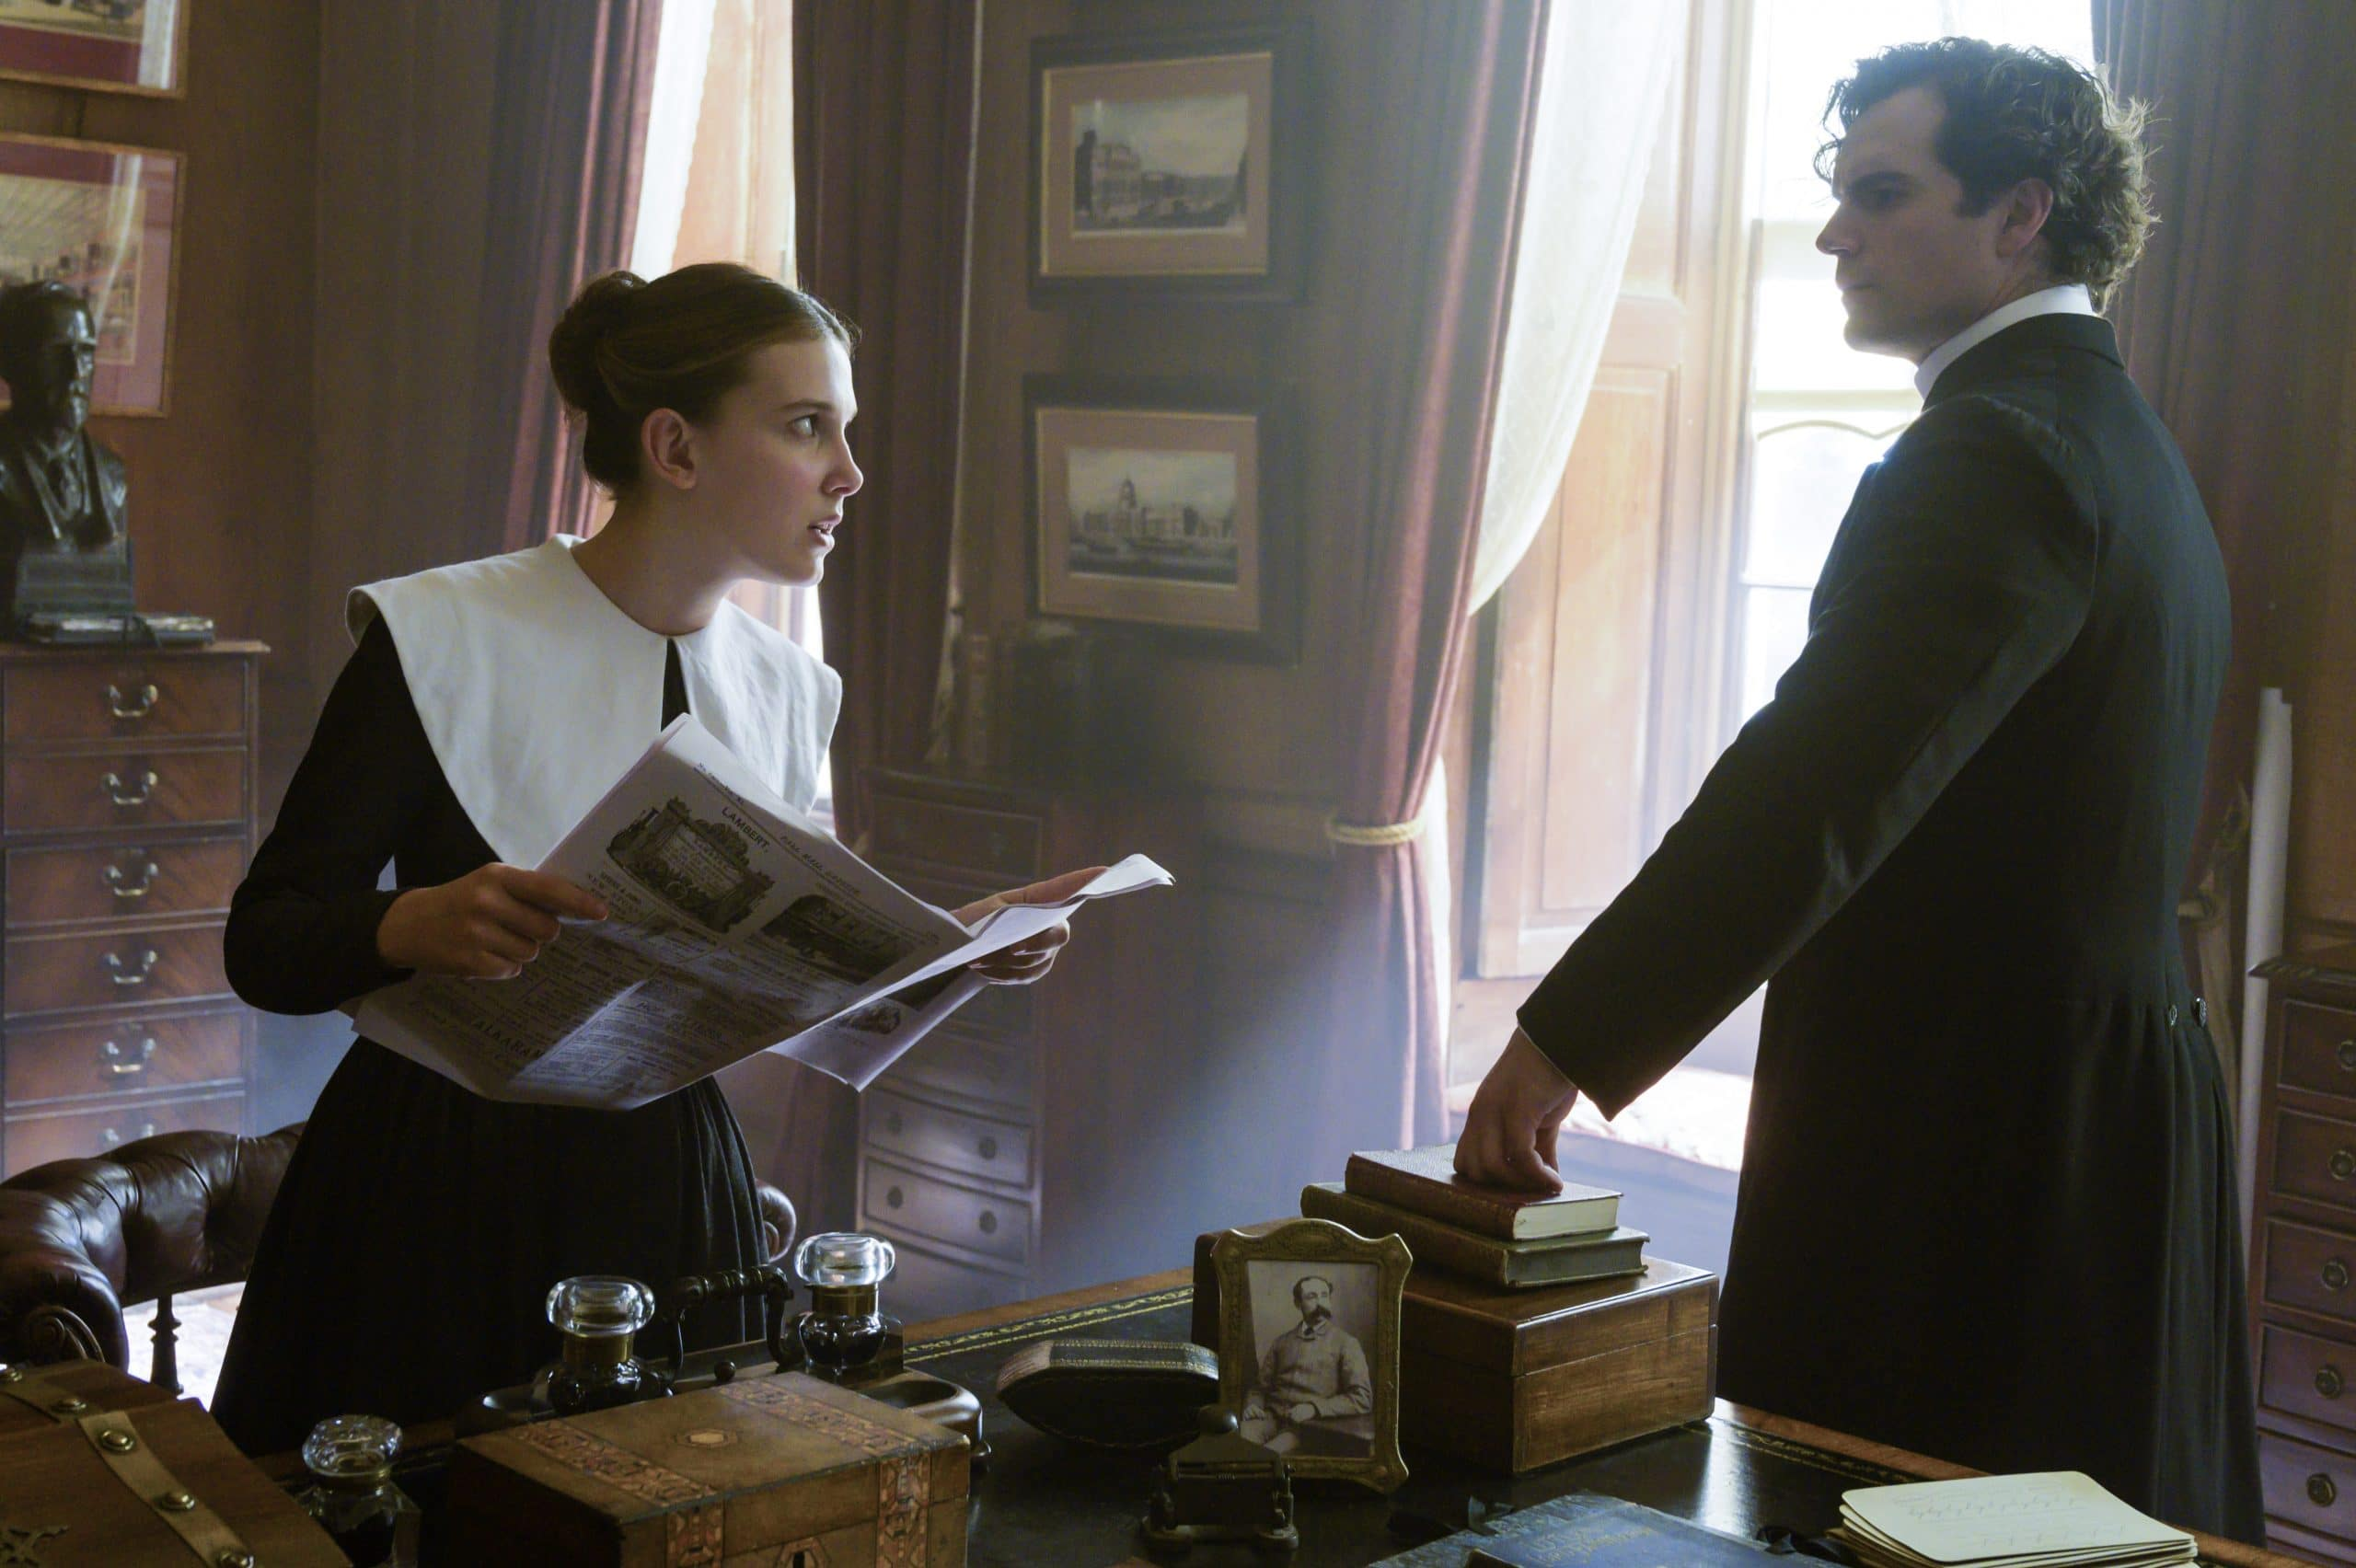 'Enola Holmes' Sequel Planned With Millie Bobby Brown, Henry Cavill Returning